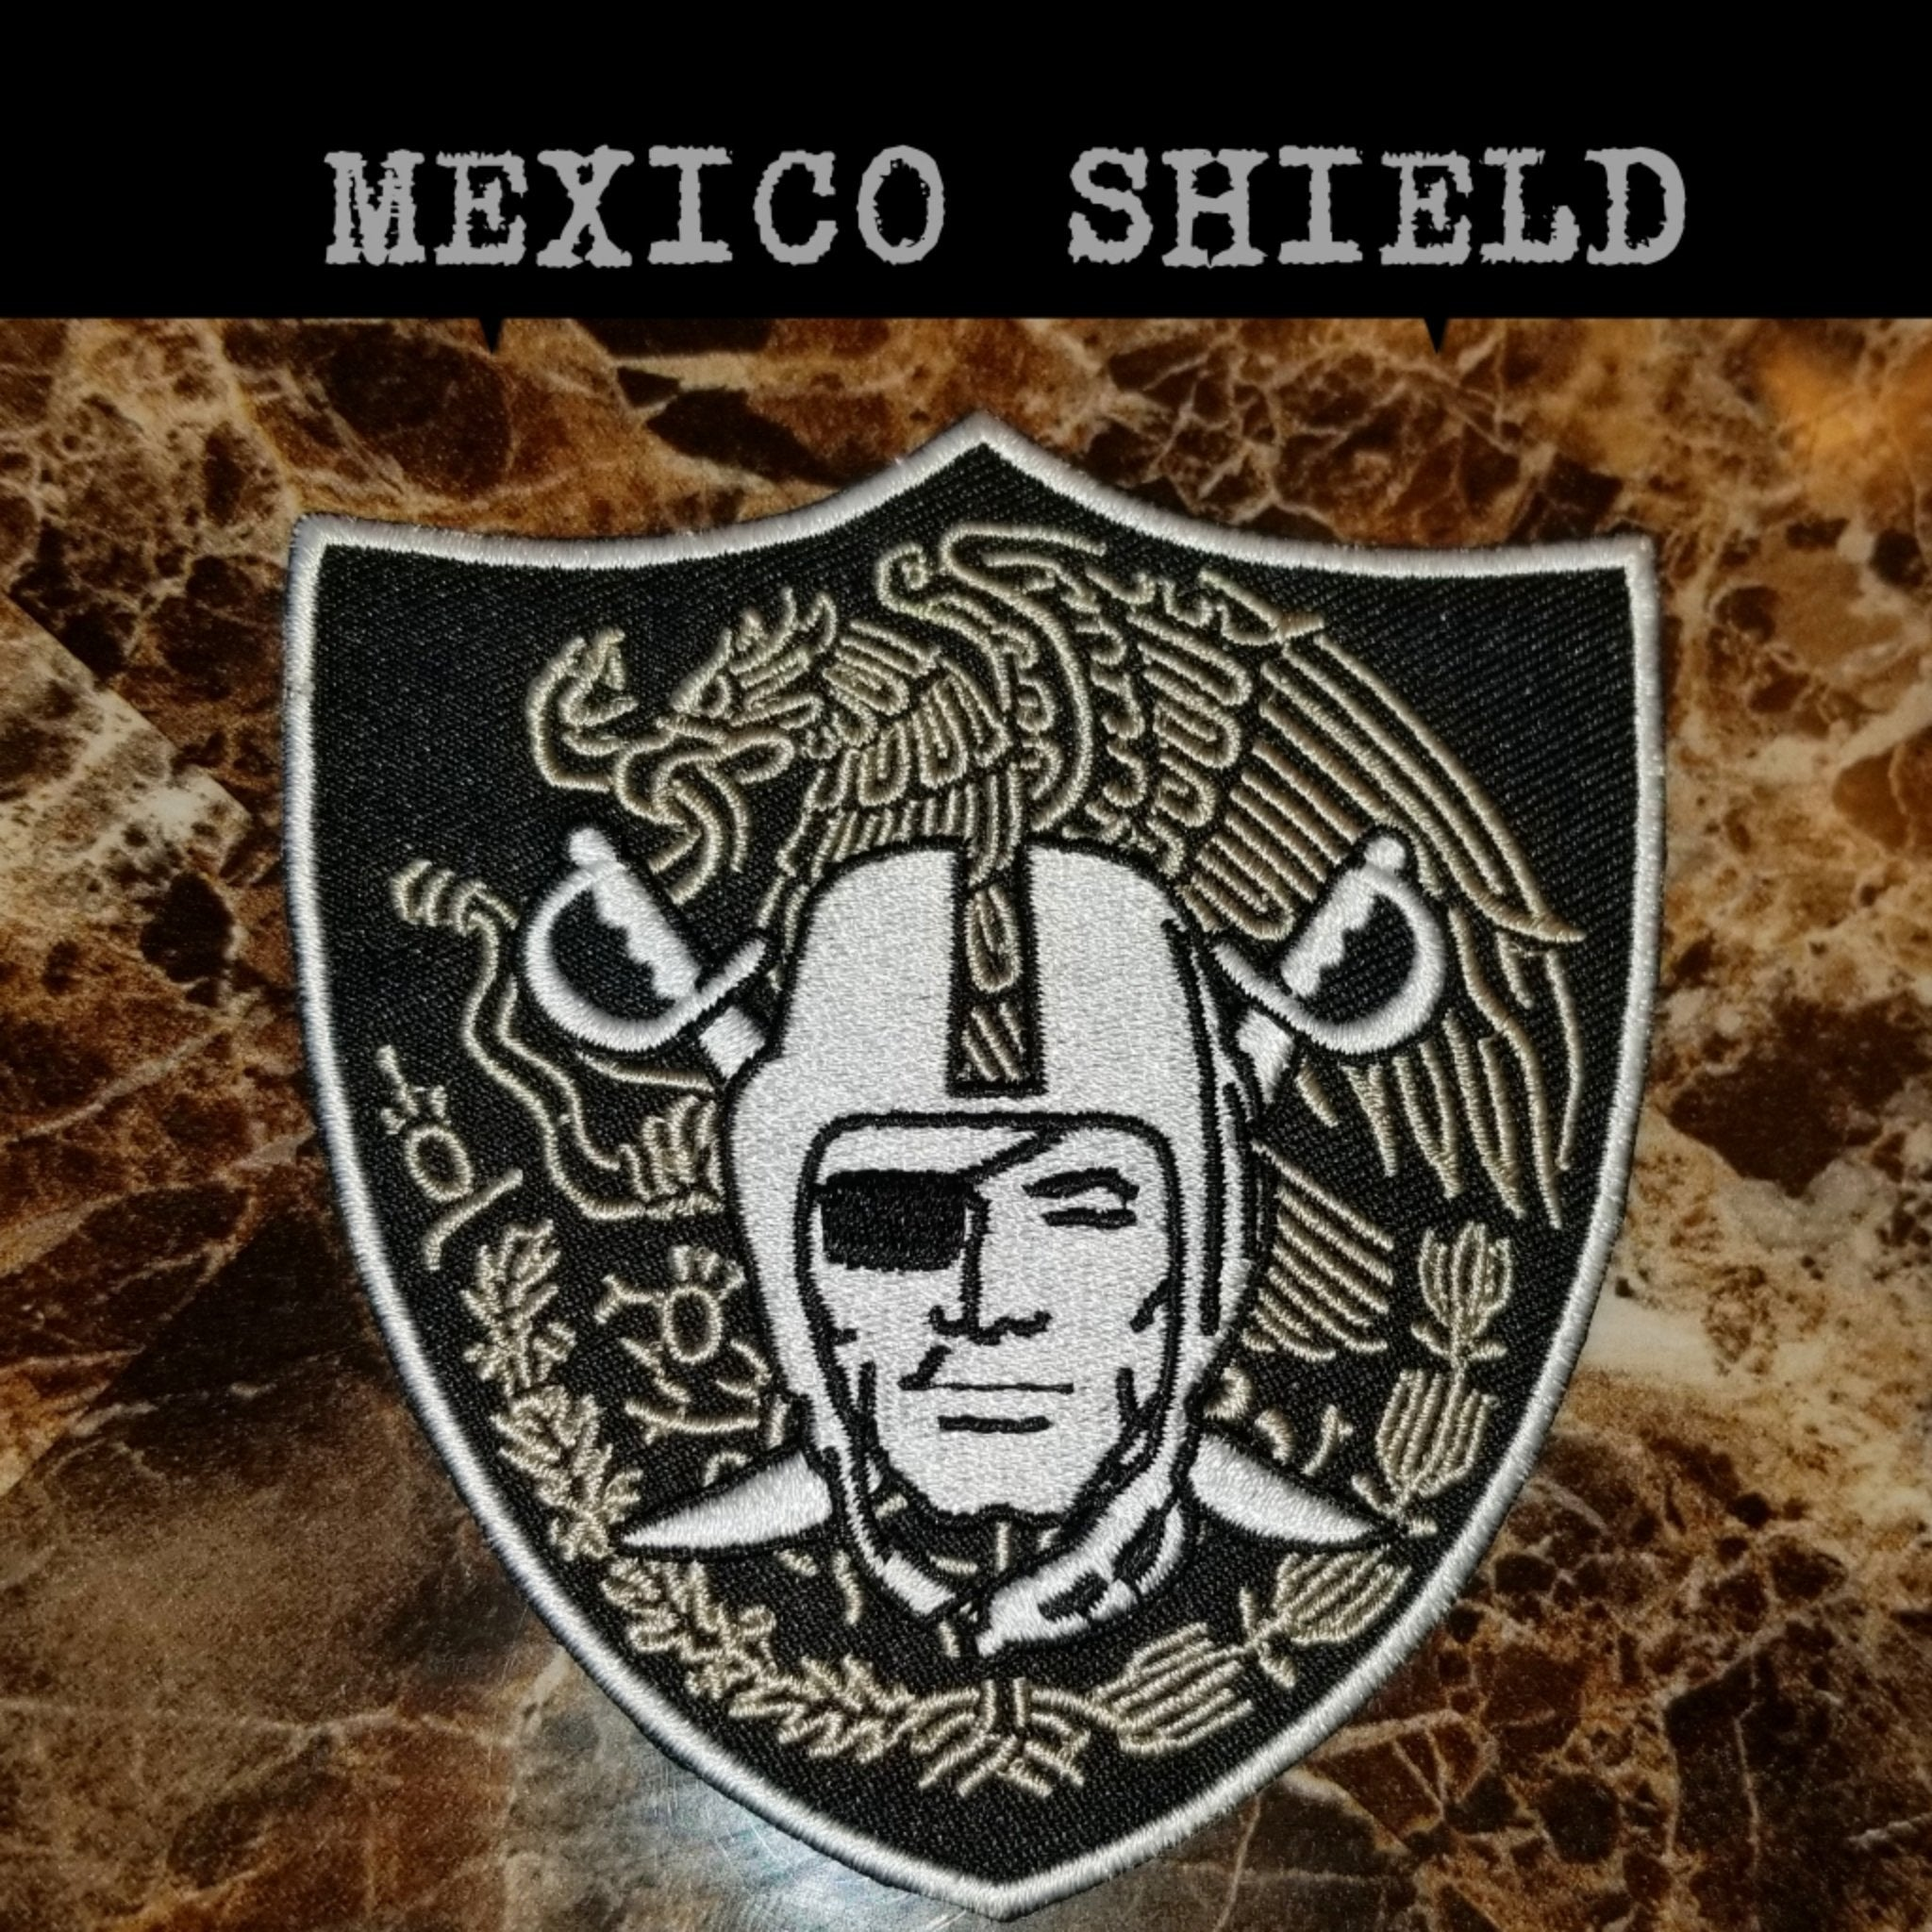 RAIDERS MEXICO SHIELD PATCH-RaiderNationStore